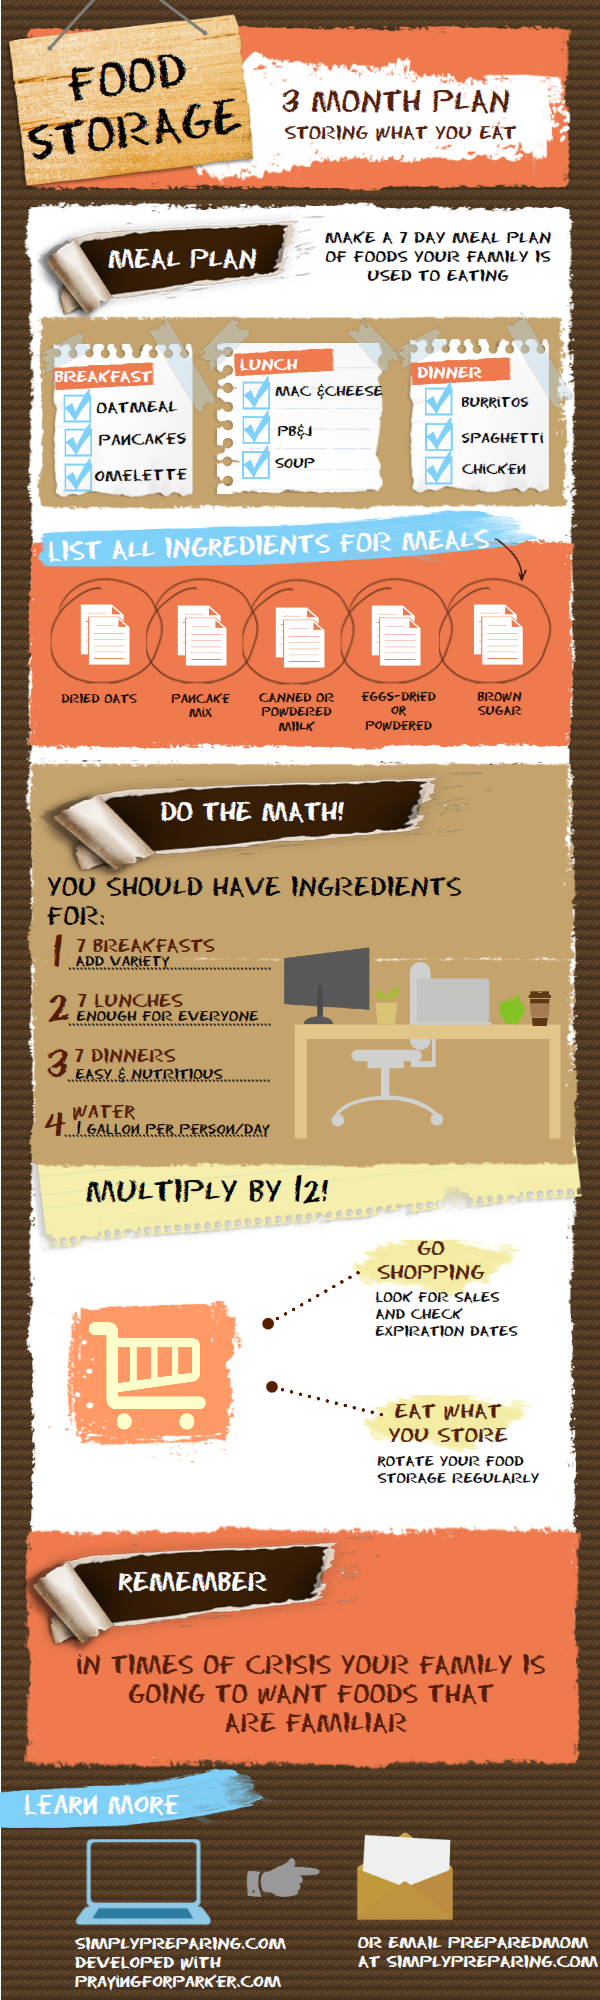 Food storage plan for 3 months step by step infographic